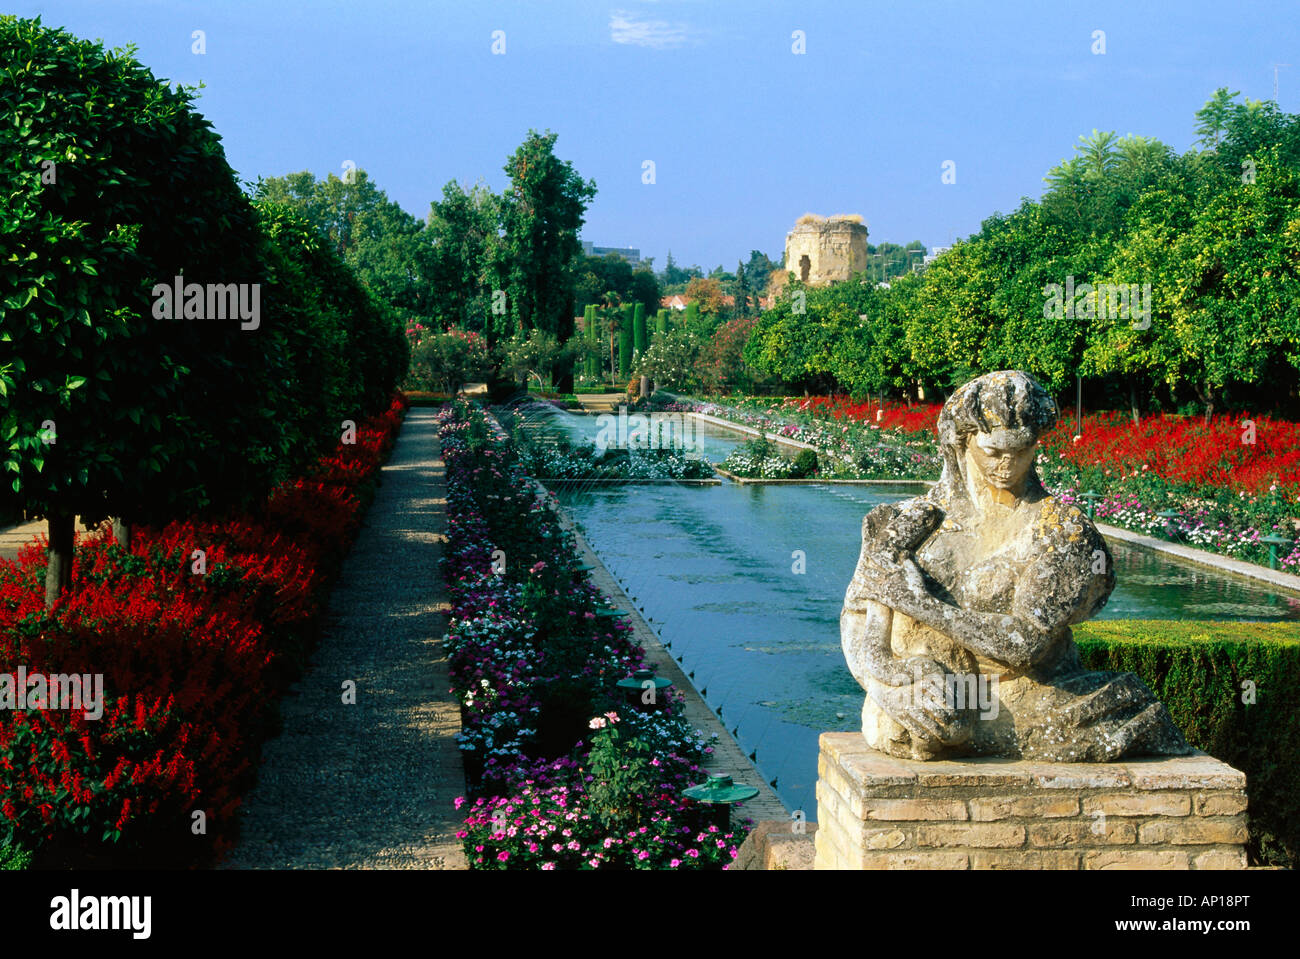 Gardens in the palace of the catholic Monarchs, Alcazar, Cordoba, Andalusia, Spain - Stock Image